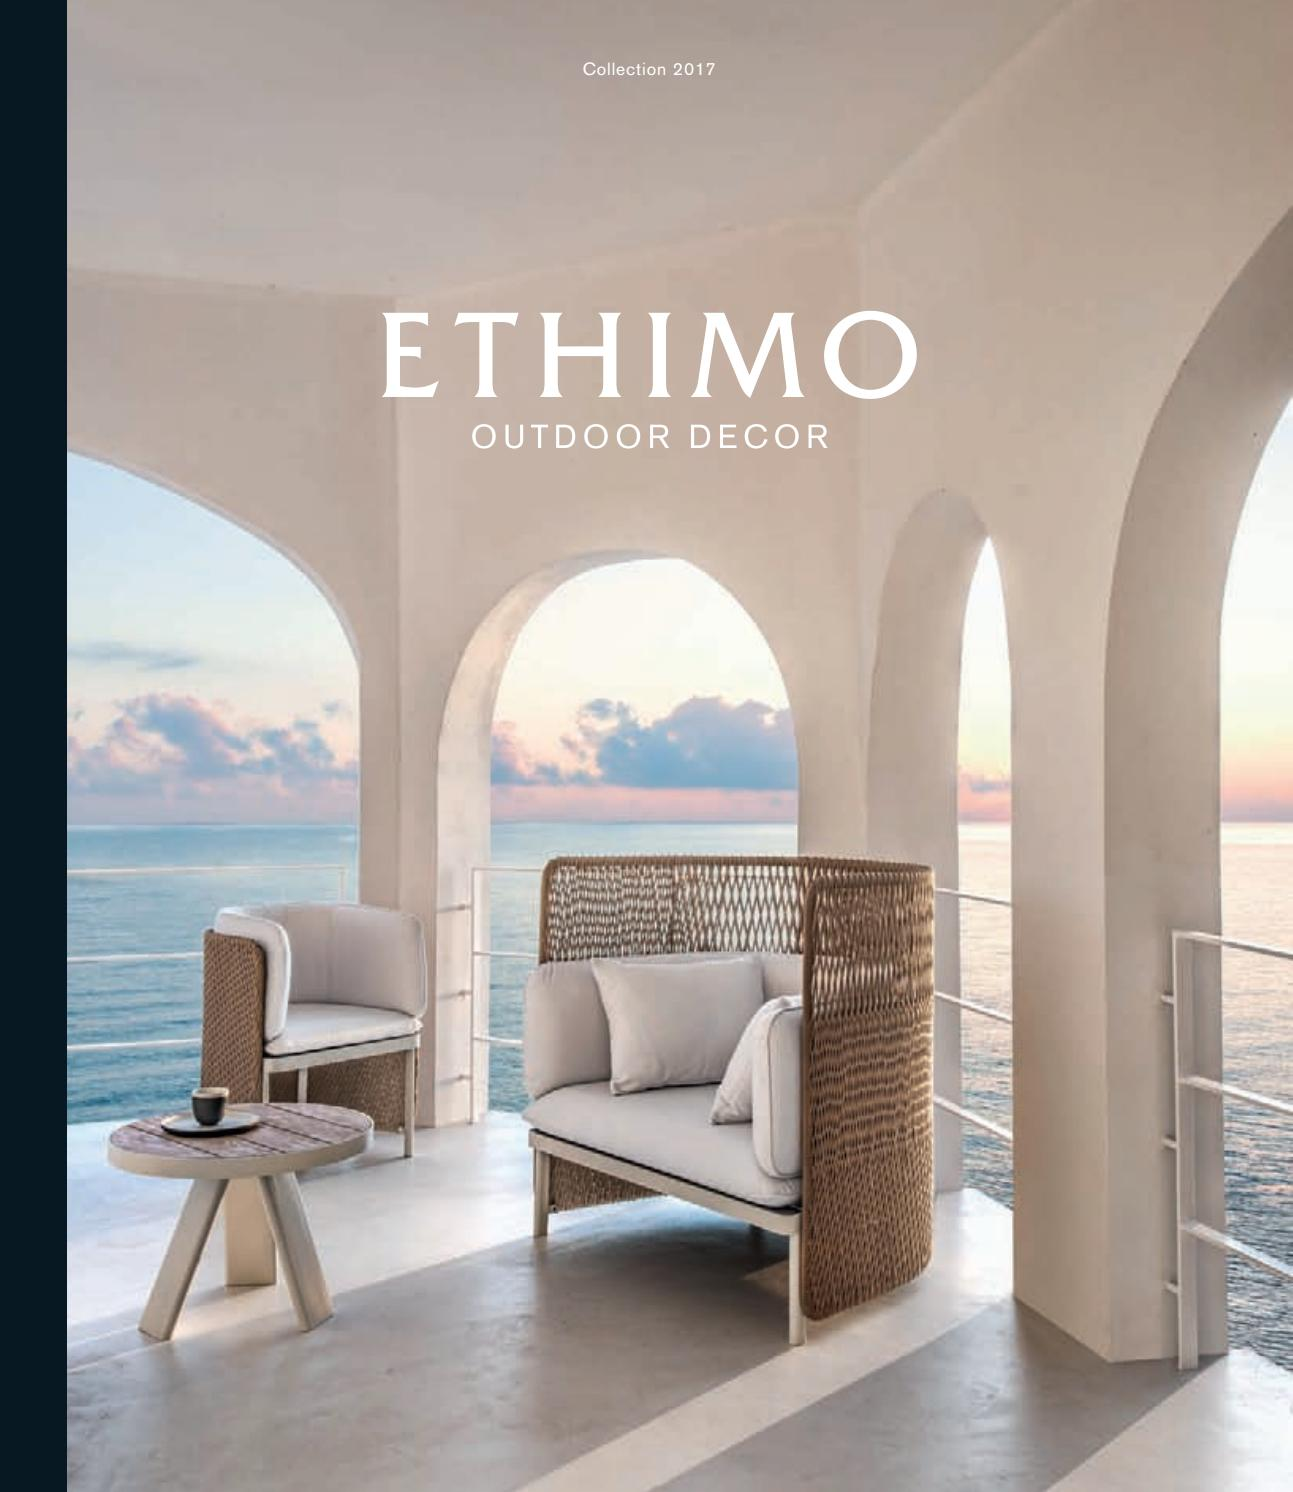 Ethimo Collection 2017 By Ethimo Issuu